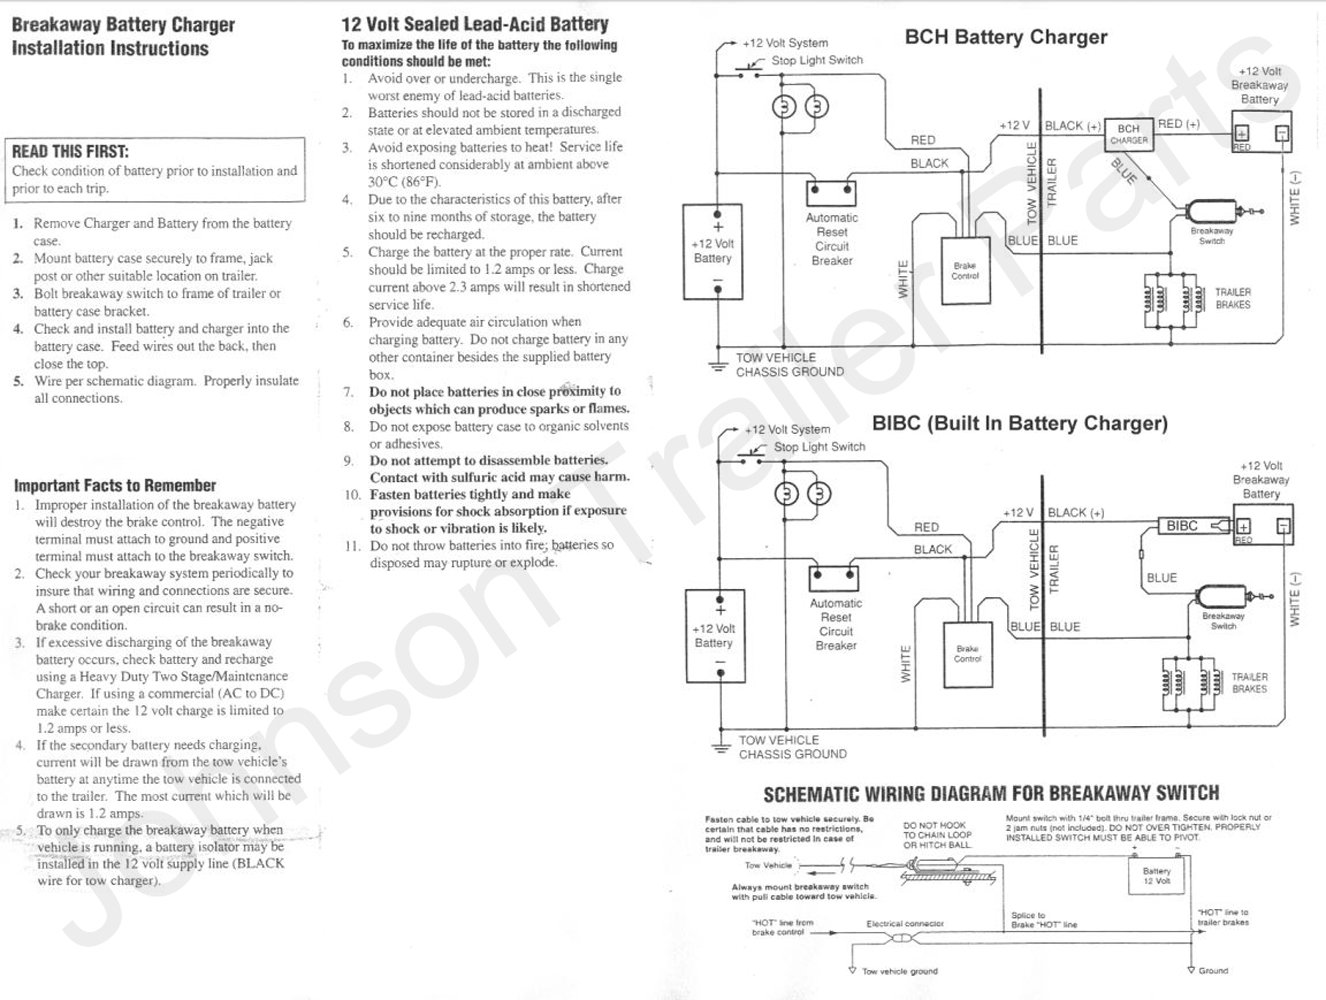 718PvzZr5ZL._SL1326_ amazon com trailer breakaway kit led readout breakaway switch tekonsha breakaway system wiring diagram at cos-gaming.co